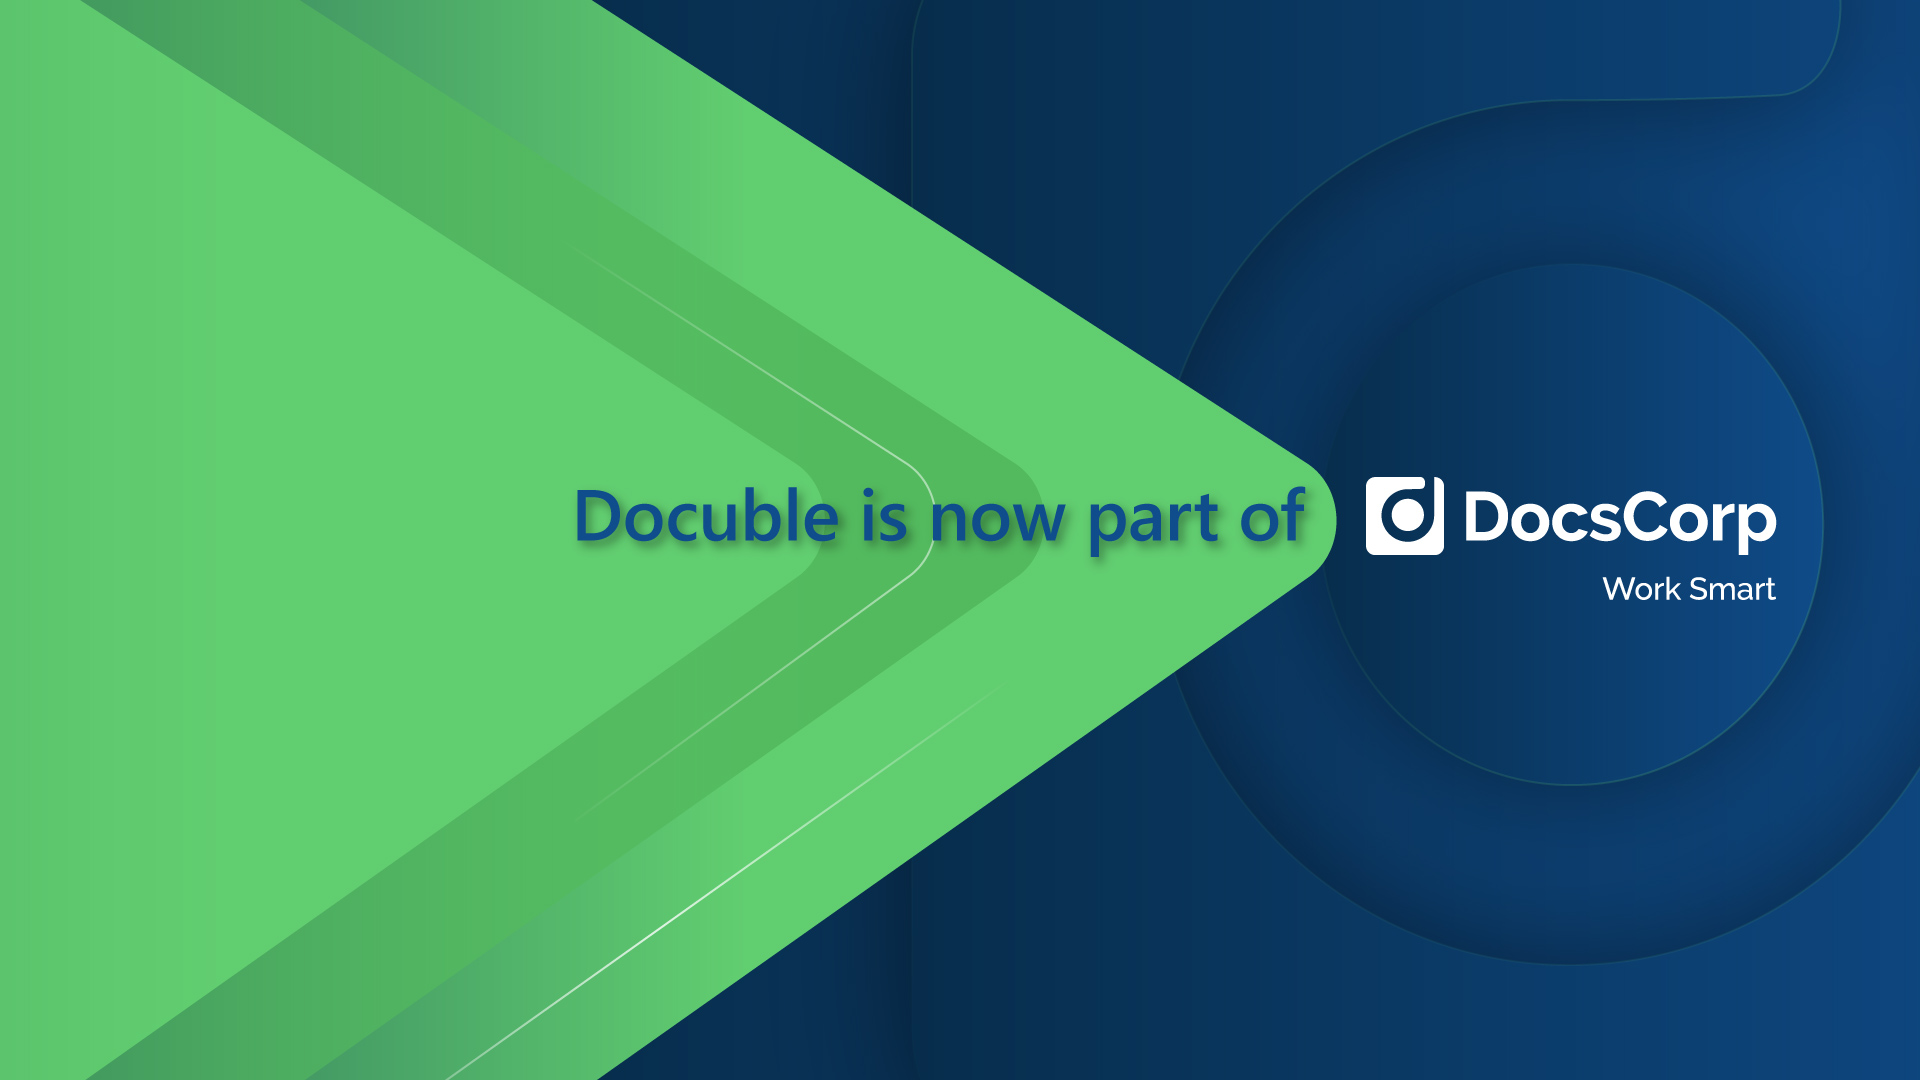 DocsCorp expands its document productivity platform with the acquisition of Docuble